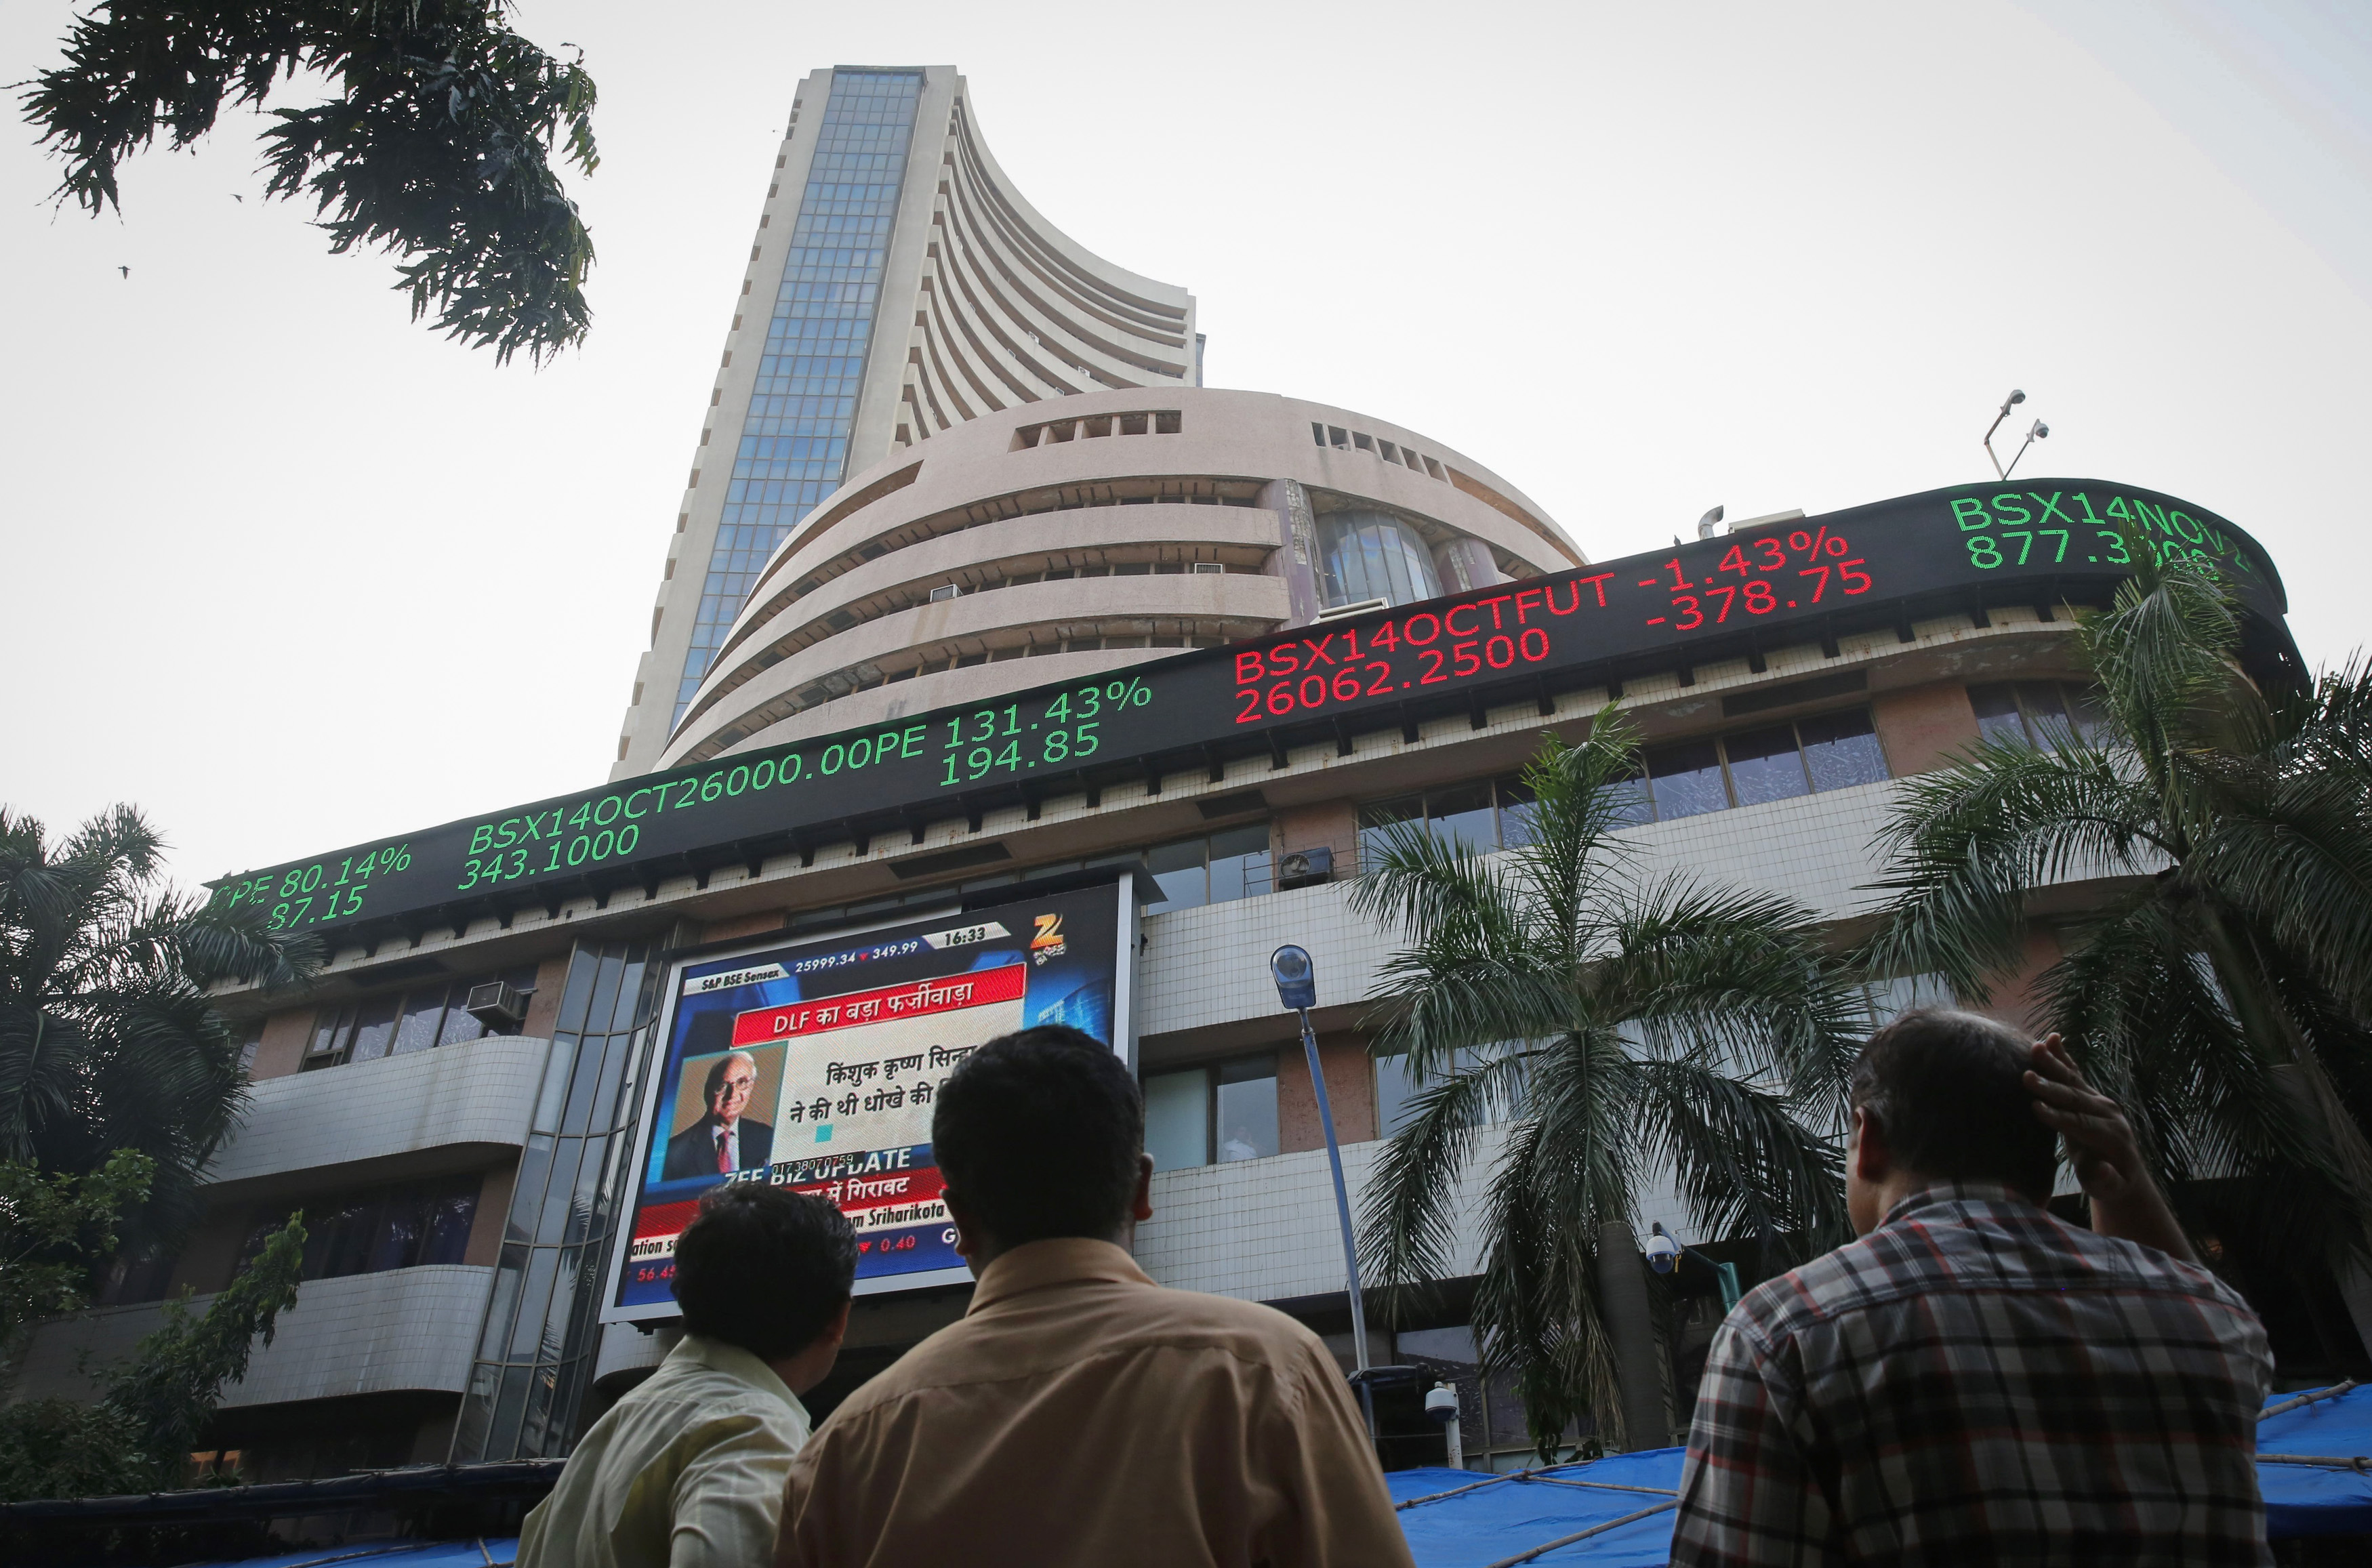 Sensex plunges over 500 points as rupee dips to 13-month low